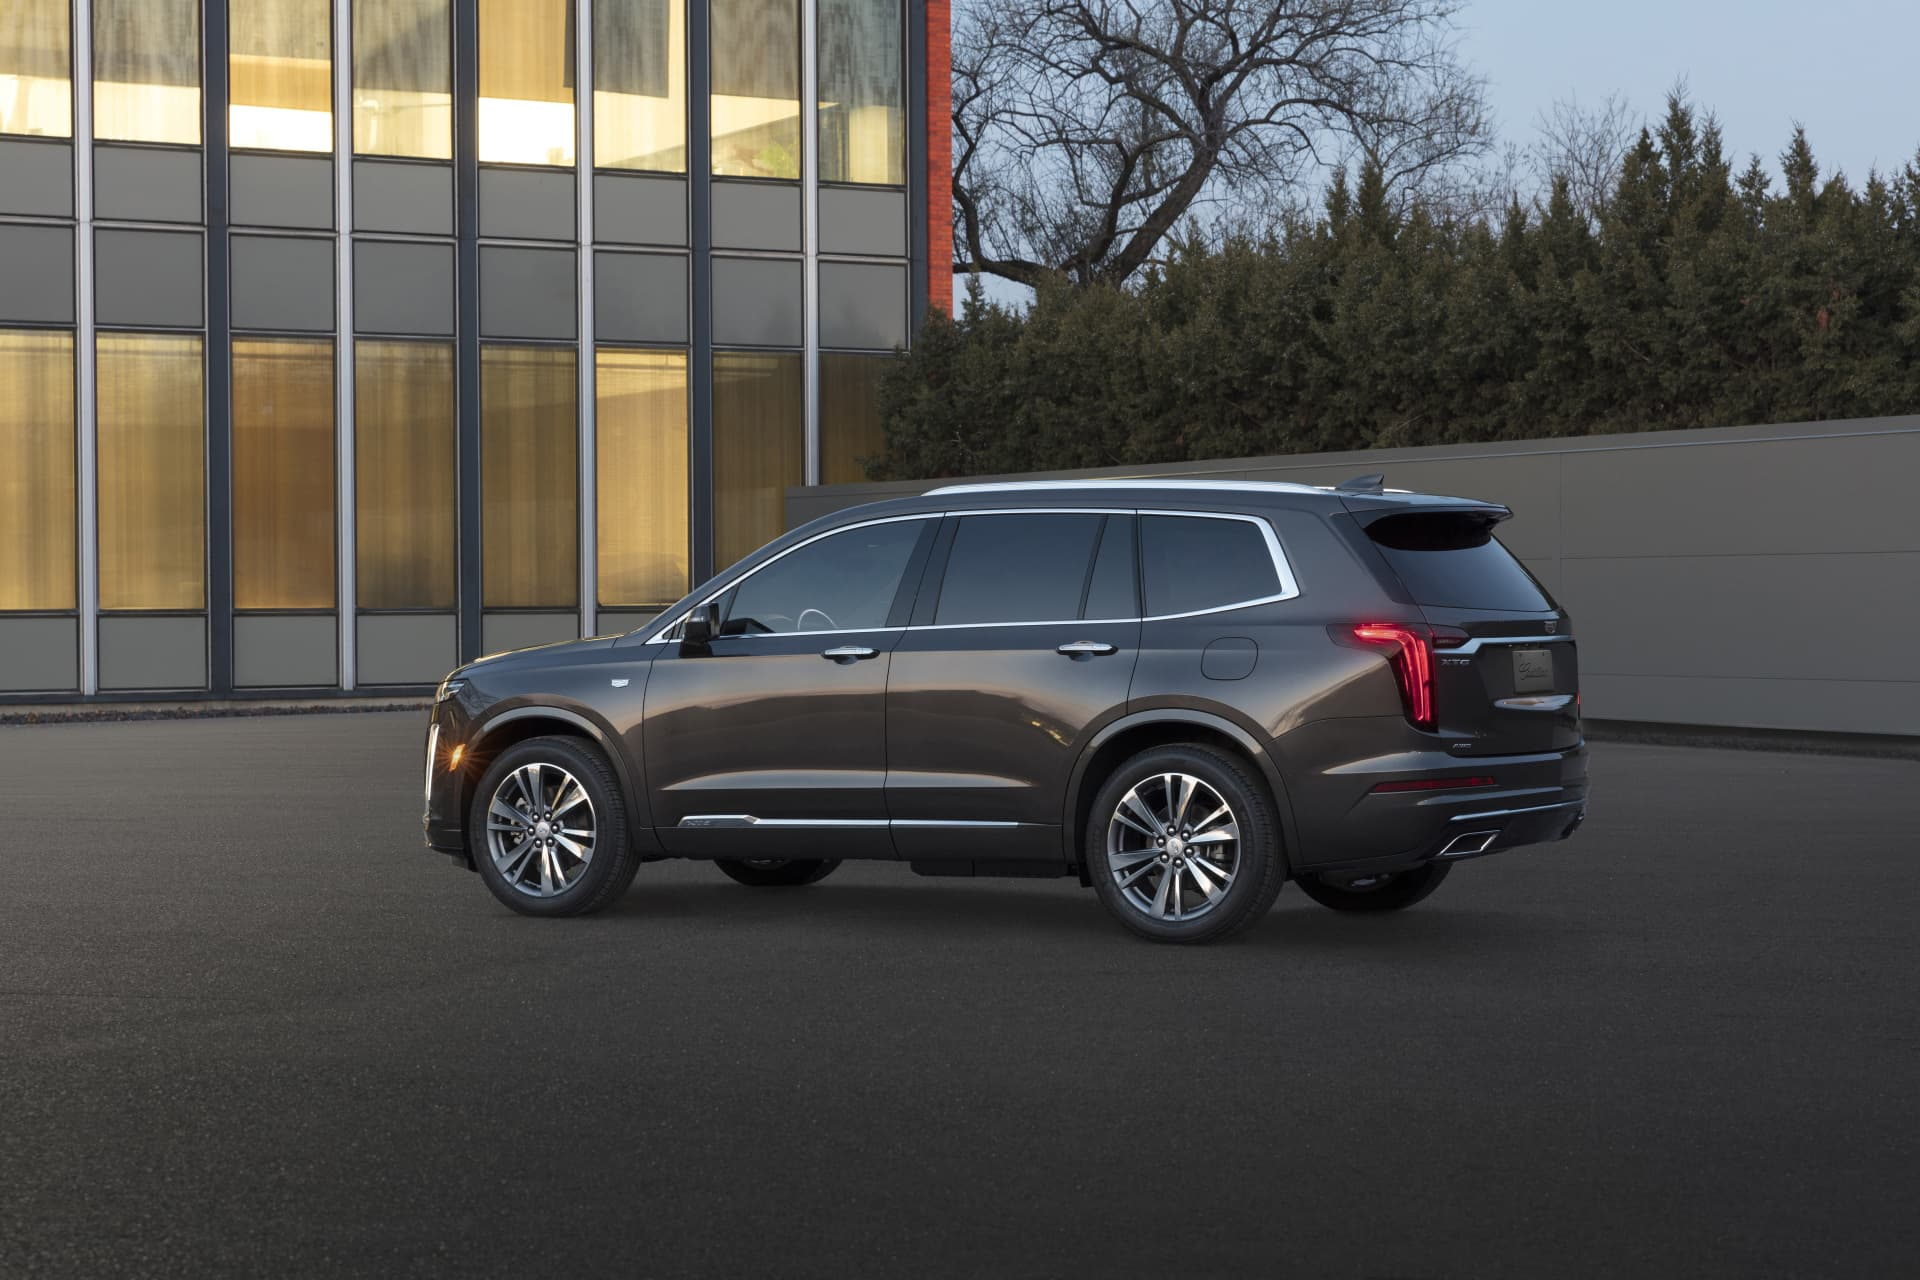 The First Ever Cadillac Xt6 Premium Luxury Model Provides An Ele